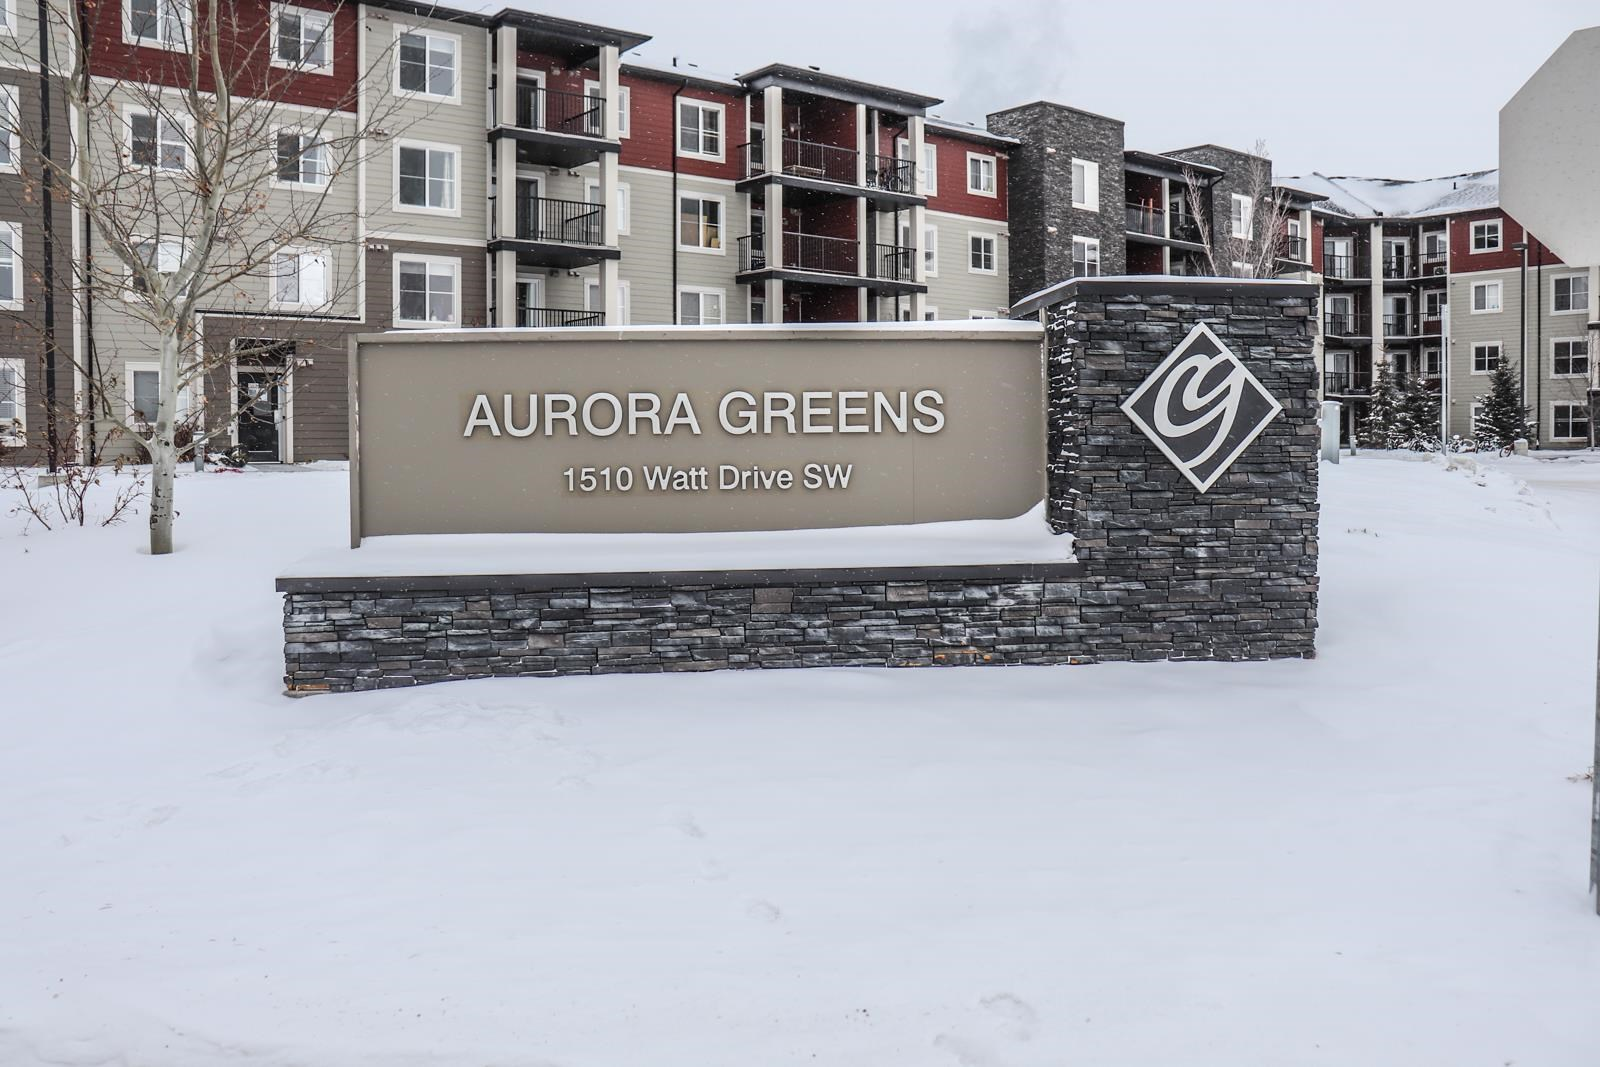 Welcome to Village of Aurora Greens Condos by Carlisle Group. Look no further than this quiet 4th floor unit , you will be impressed with this fourth floor Stylish 2 Bed, 1 Bath. This unit comes with titled Heated underground parking. This south-facing condo Is bright, & with high demand in the area for rent. You will appreciate the UPGRADES offered, such as the rich Dark Cabinets (Real Wood), Granite Countertops. shopping, transportation, schools, playgrounds all merely minutes away. Well managed condo unit will be perfect for both investors and first-time home buyers.